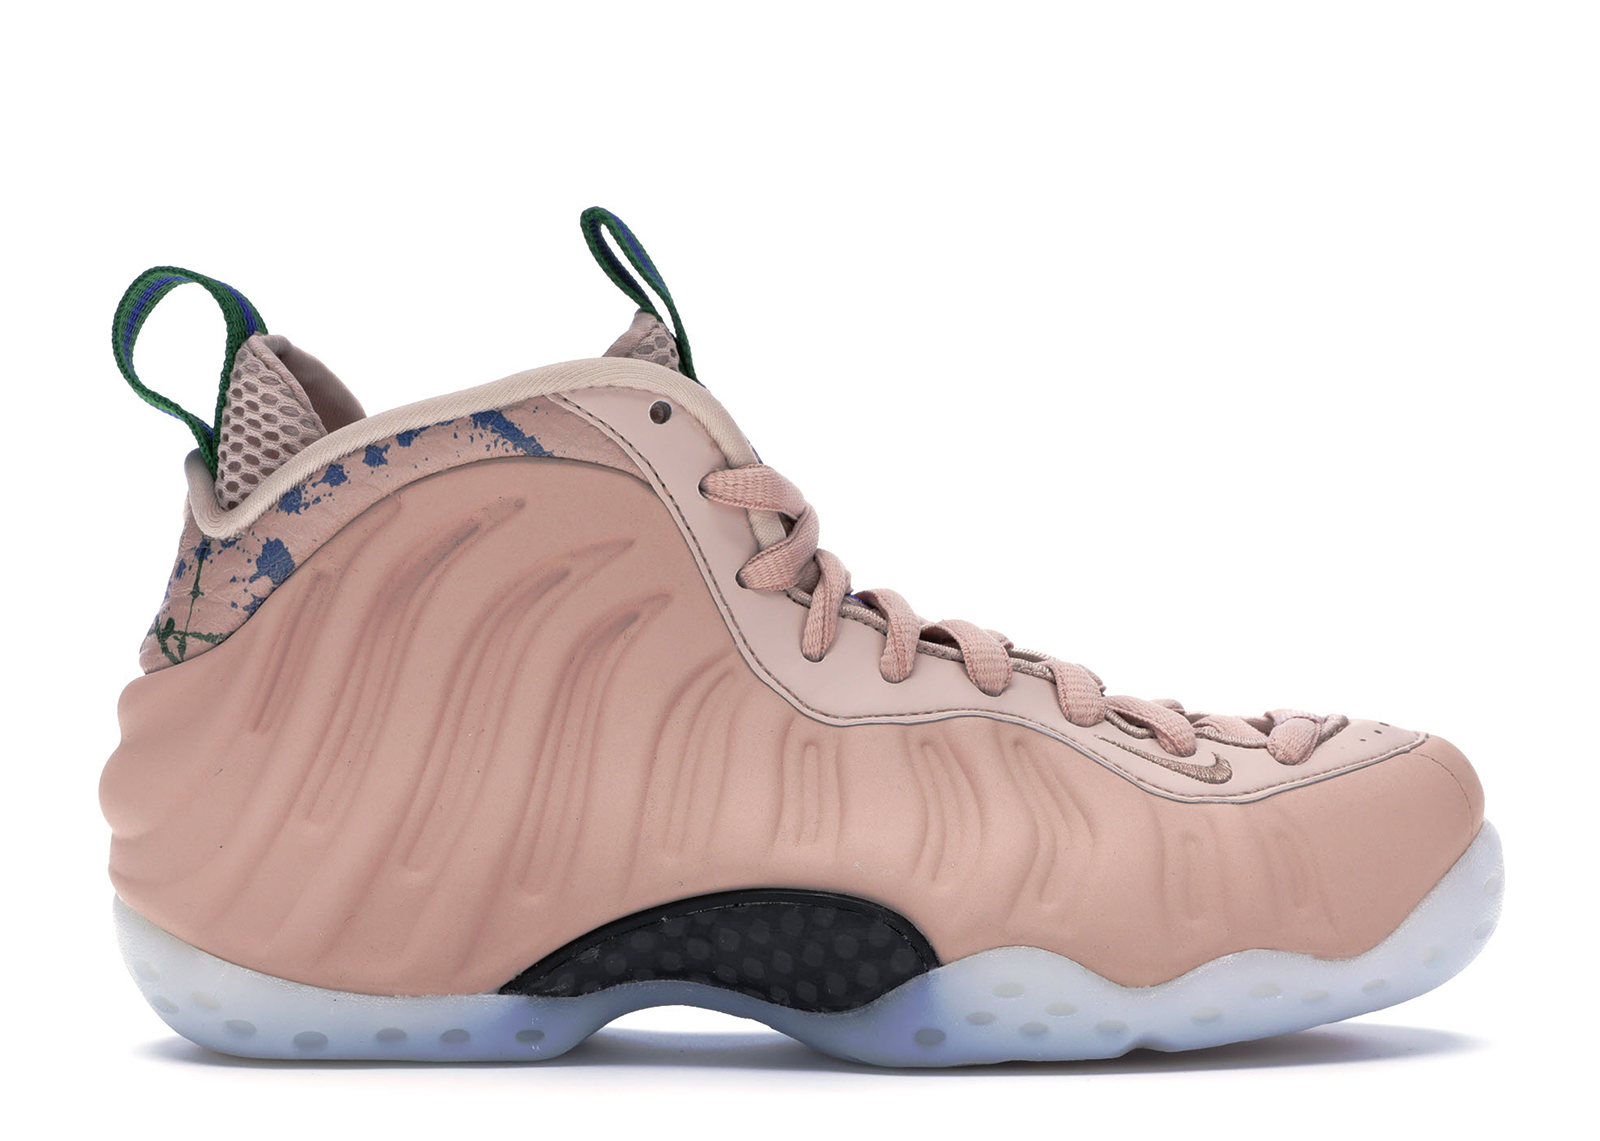 Nike Air Foamposite One Particle Beige